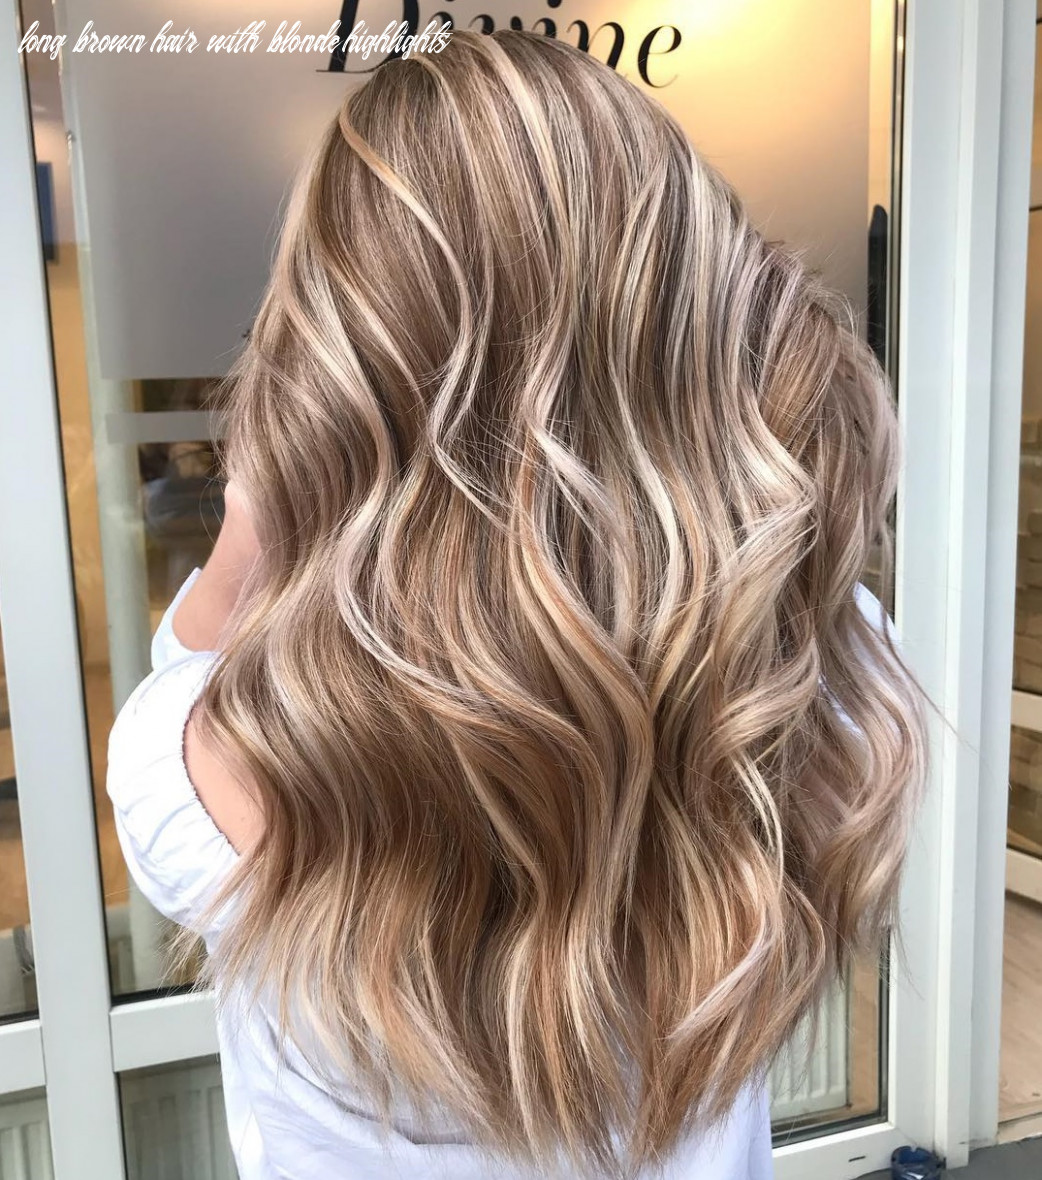 11 Light Brown Hair Color Ideas for Your New Look